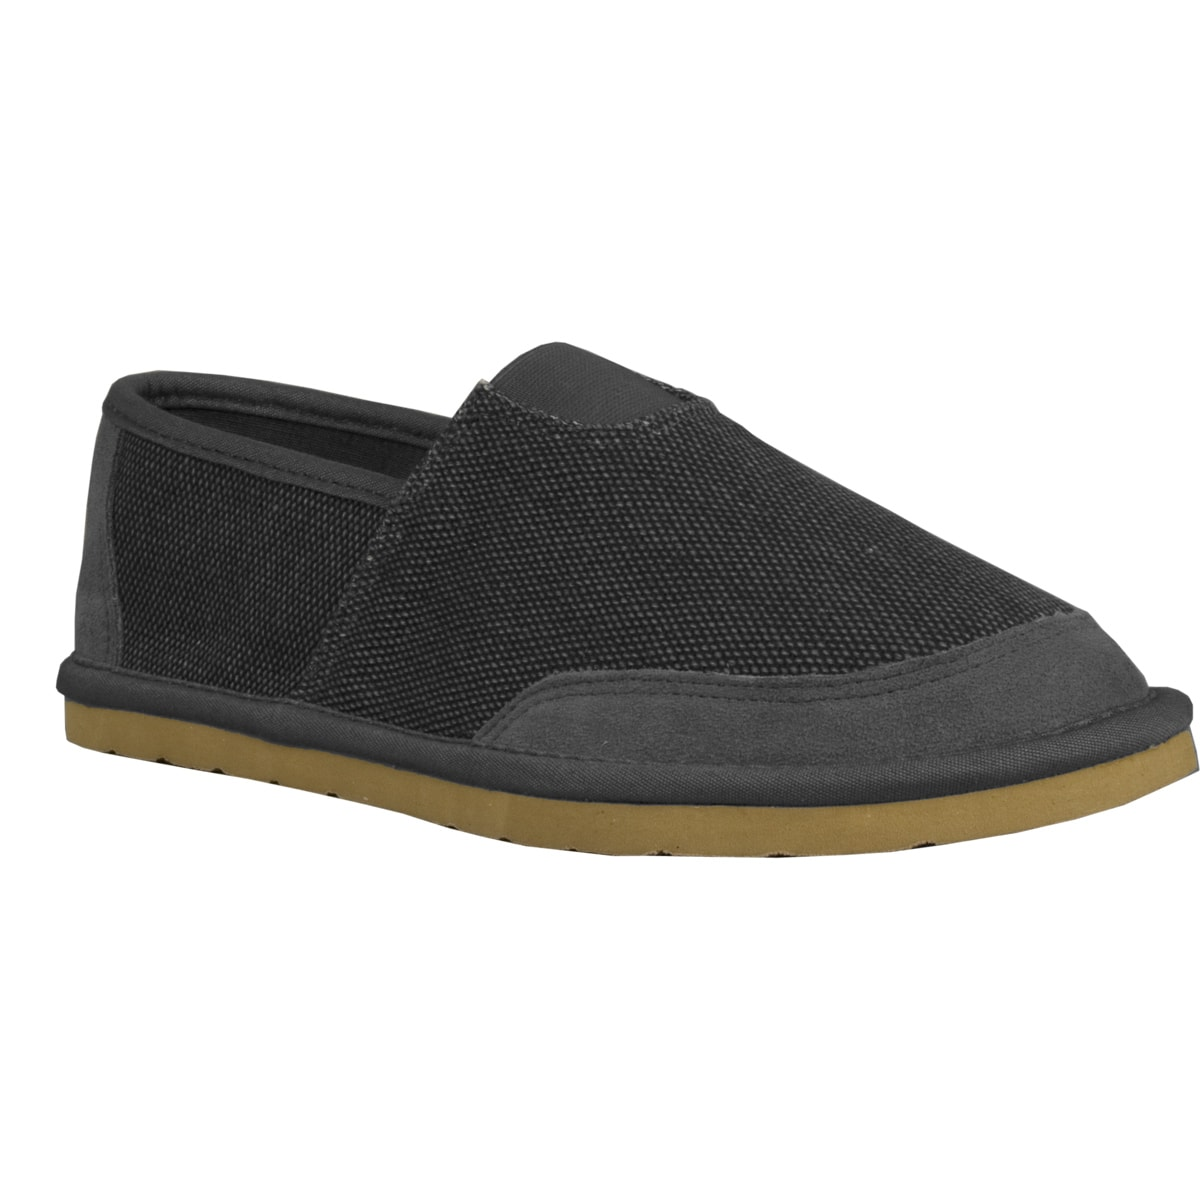 Lugz Men's 'Root' Canvas Suede Charcoal Slip-on Shoes